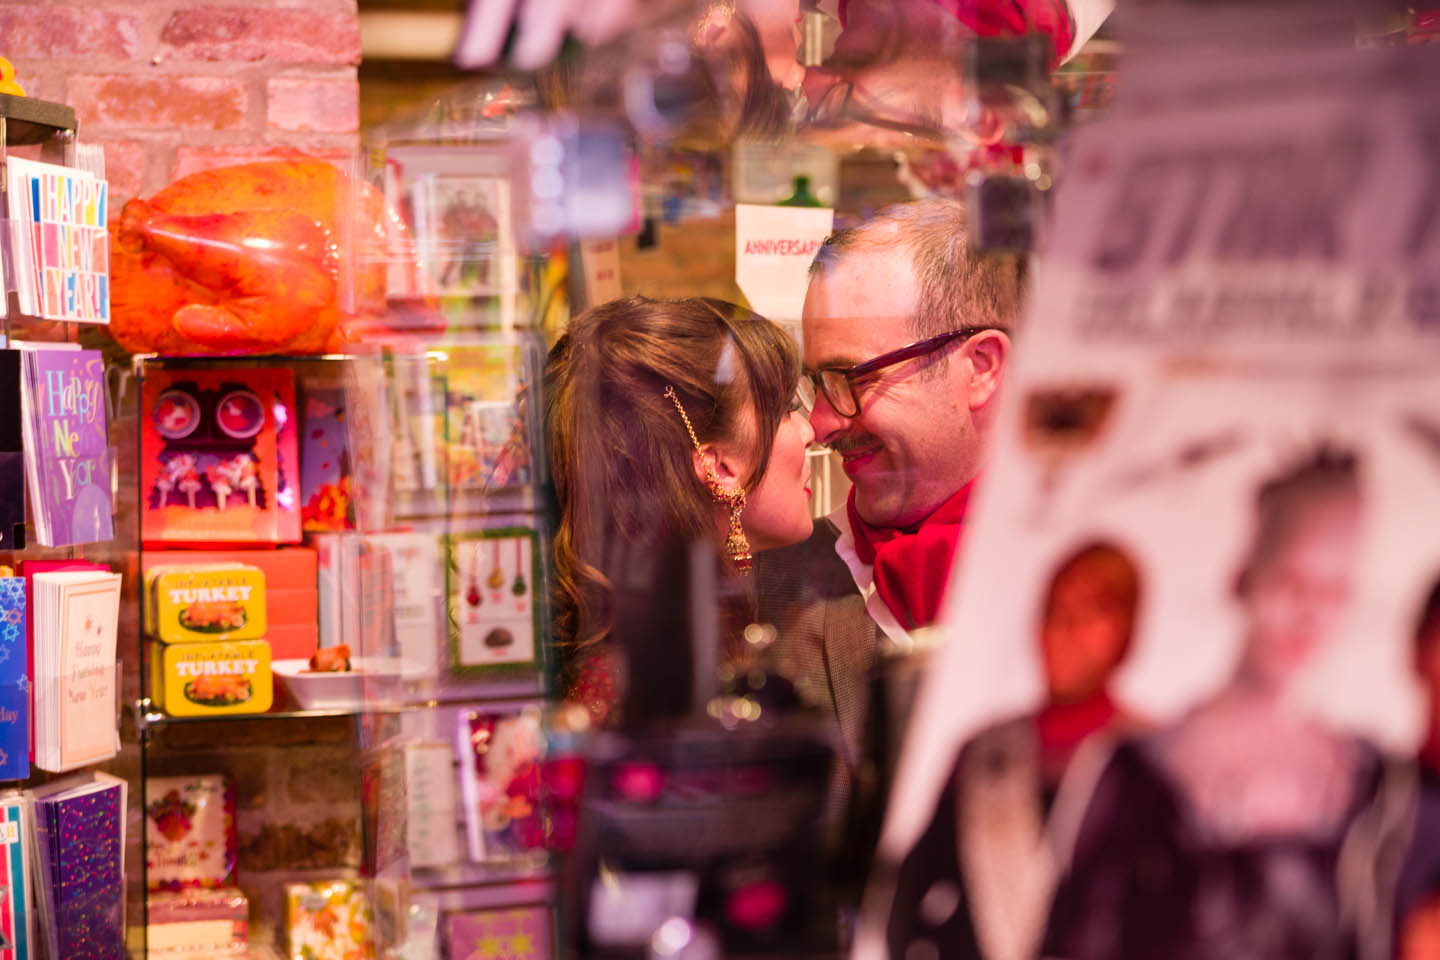 Finding the unique wedding photos in a novelty shop